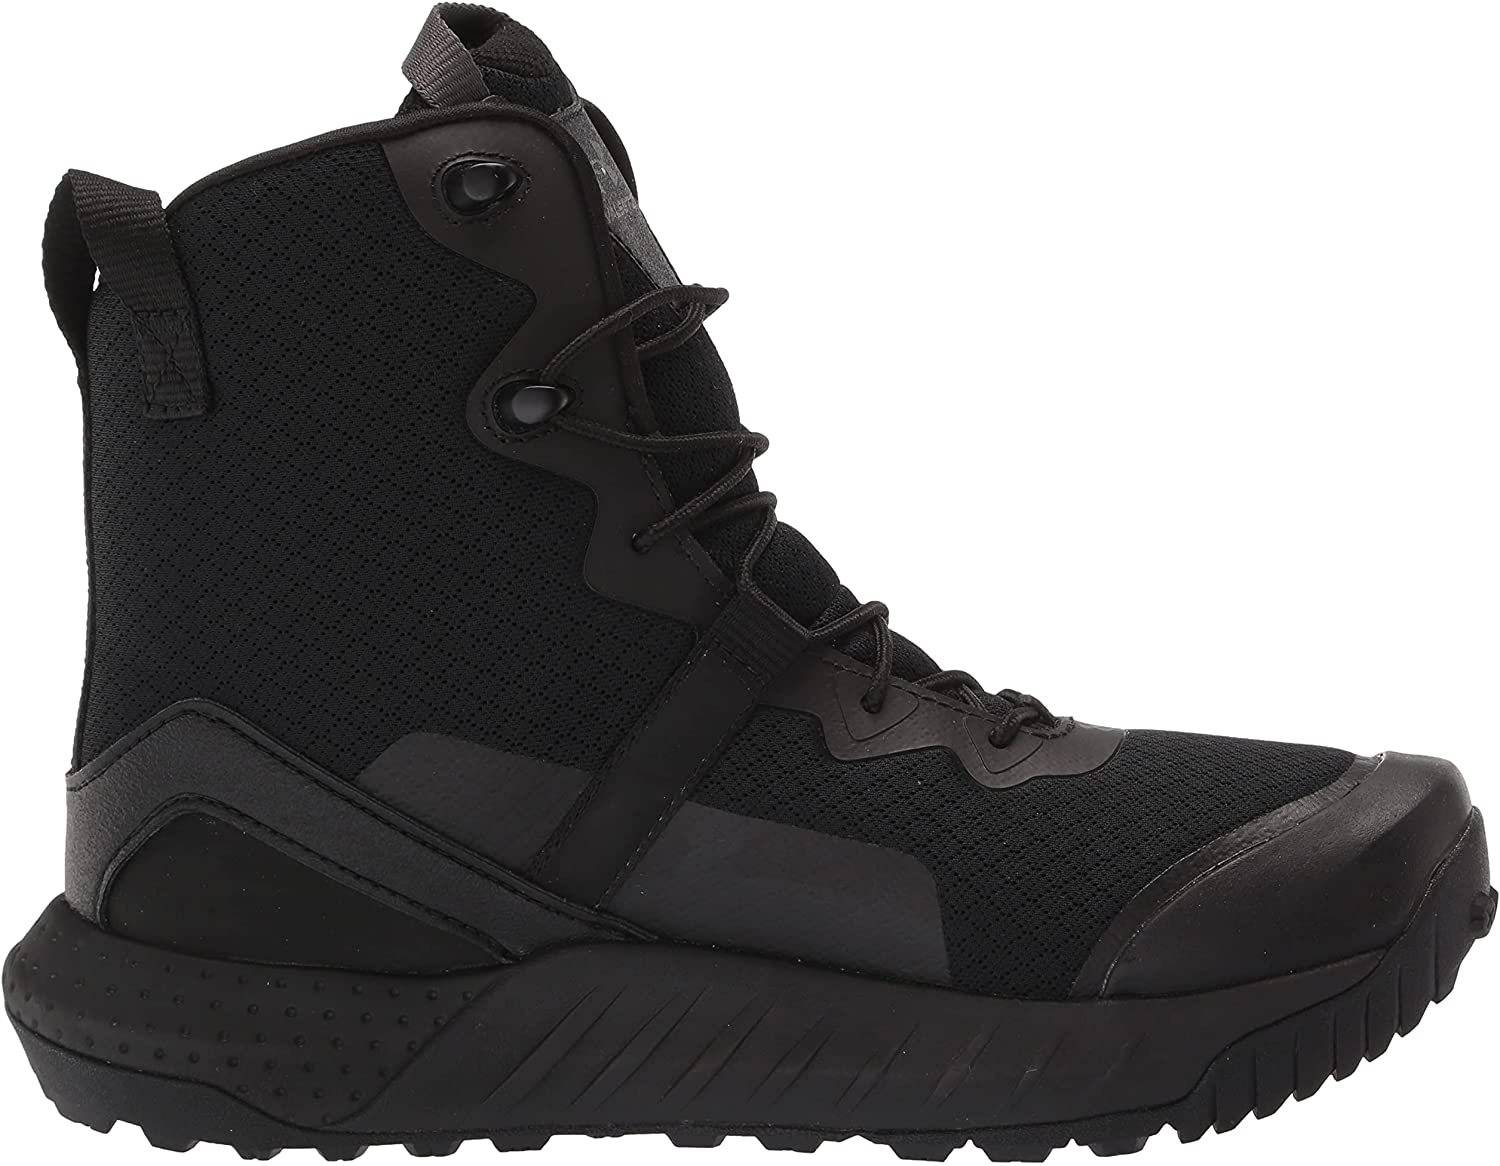 Under Armour Women's Micro G Valsetz Military and Tactical Boot